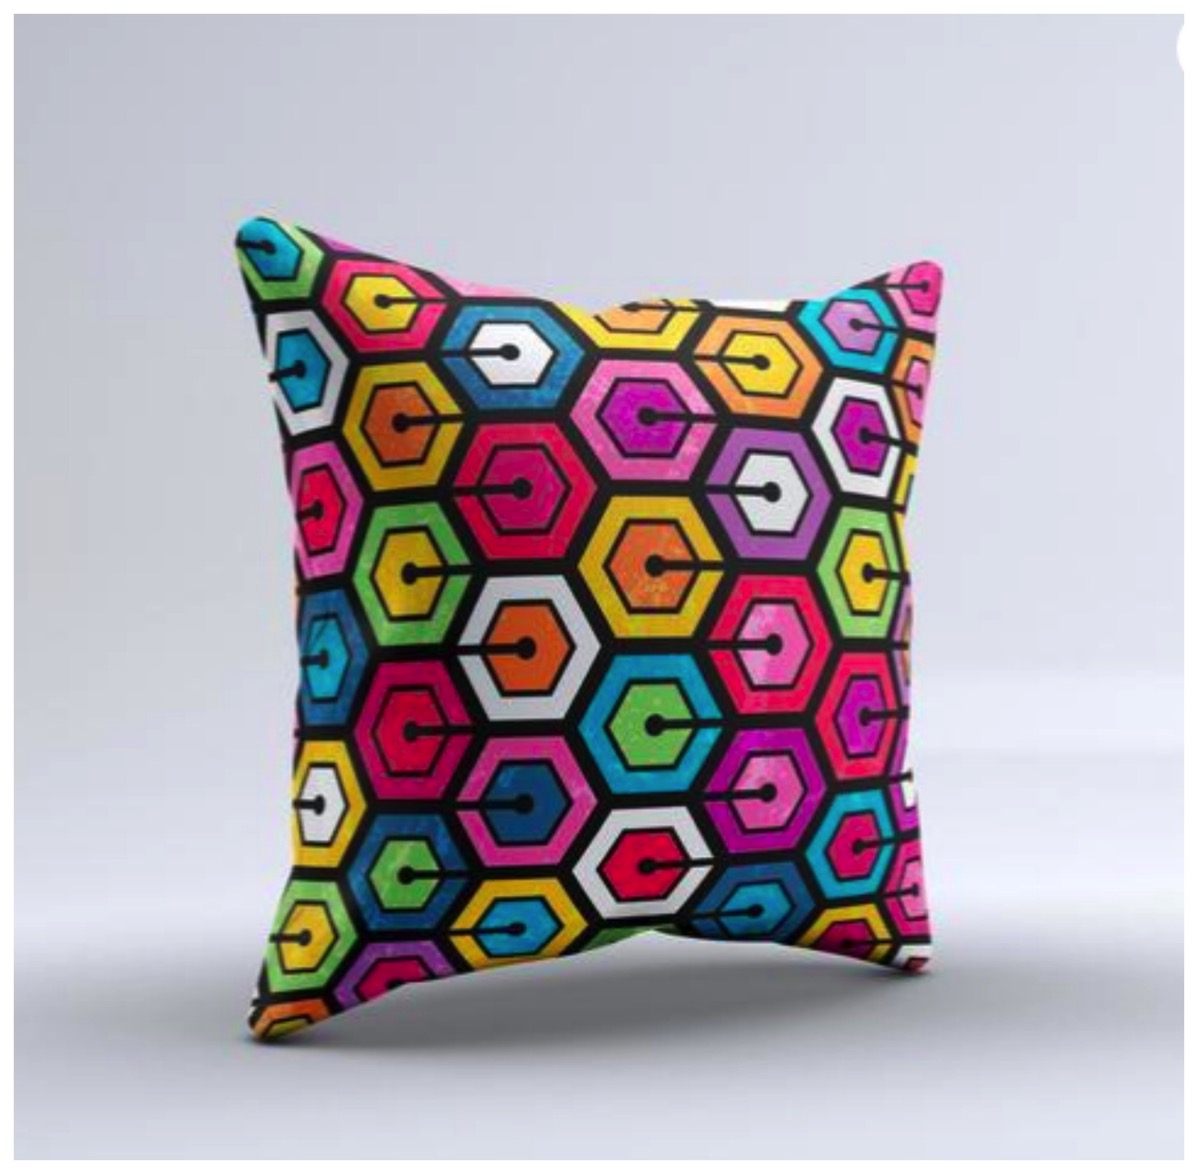 Geometric colorful pillow for home dig and hang unique pillows that are colorful